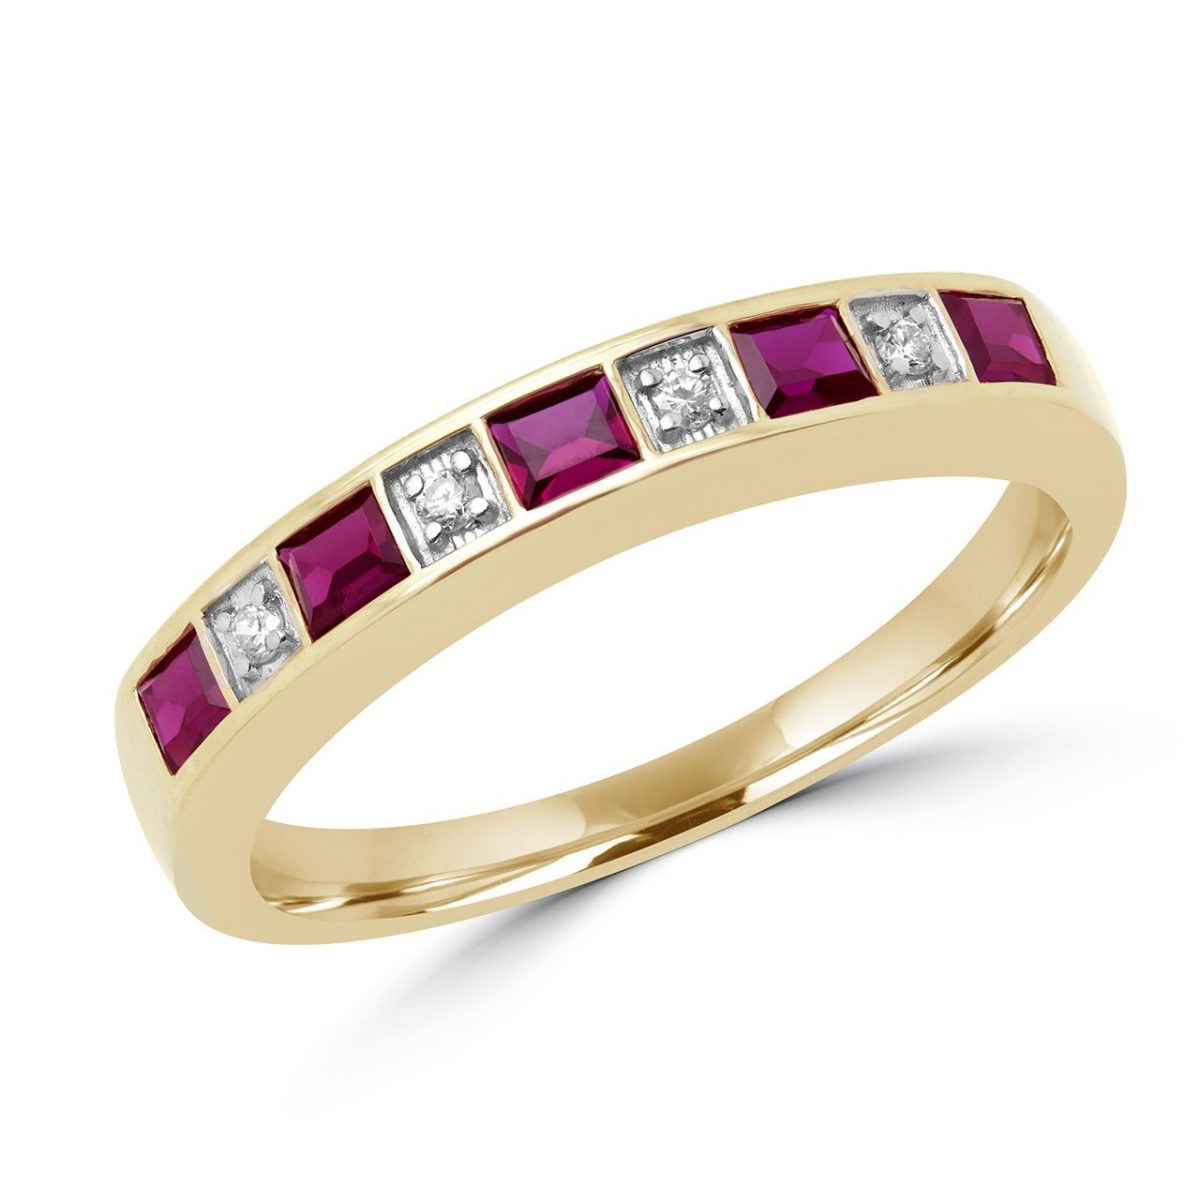 0-64-carat-ctw-ruby-and-diamond-wedding-band-anniversary-ring-in-10k-yellow-gold